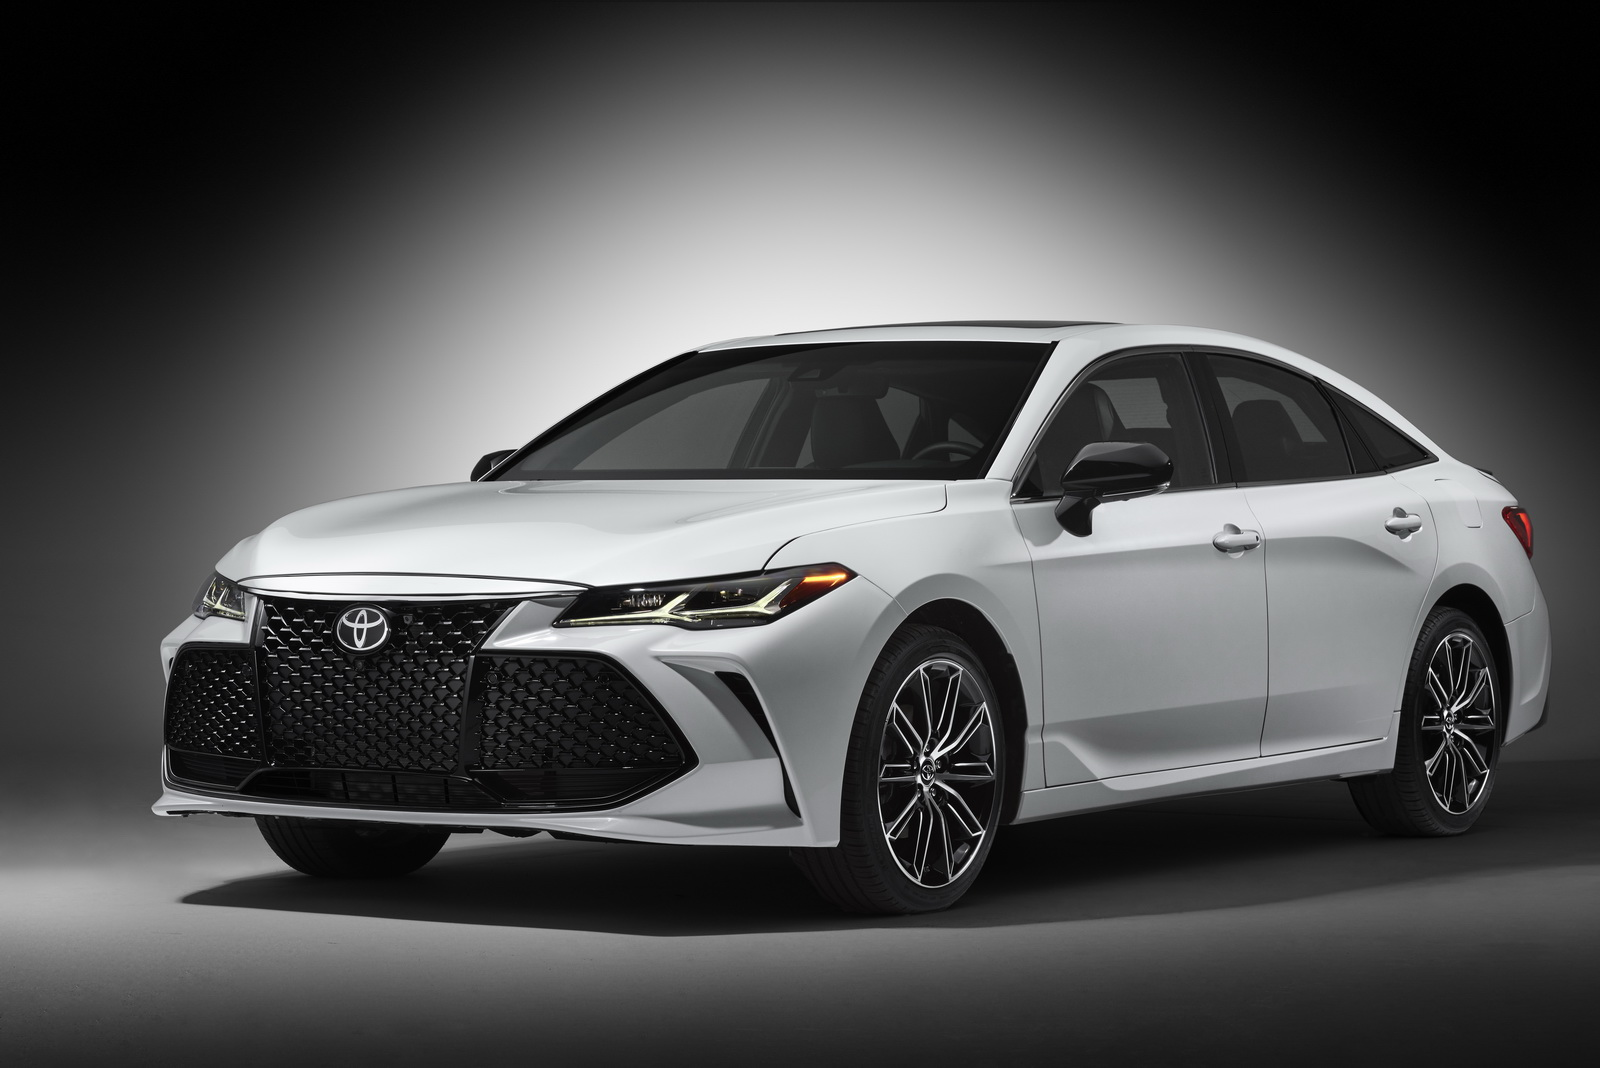 The new Avalon 2019 is being unveiled in Detroit The new Avalon 2019 is being unveiled in Detroit  D8 AA D9 88 D9 8A D9 88 D8 AA D8 A7  D8 A7 D9 81 D8 A7 D9 84 D9 88 D9 86 2019